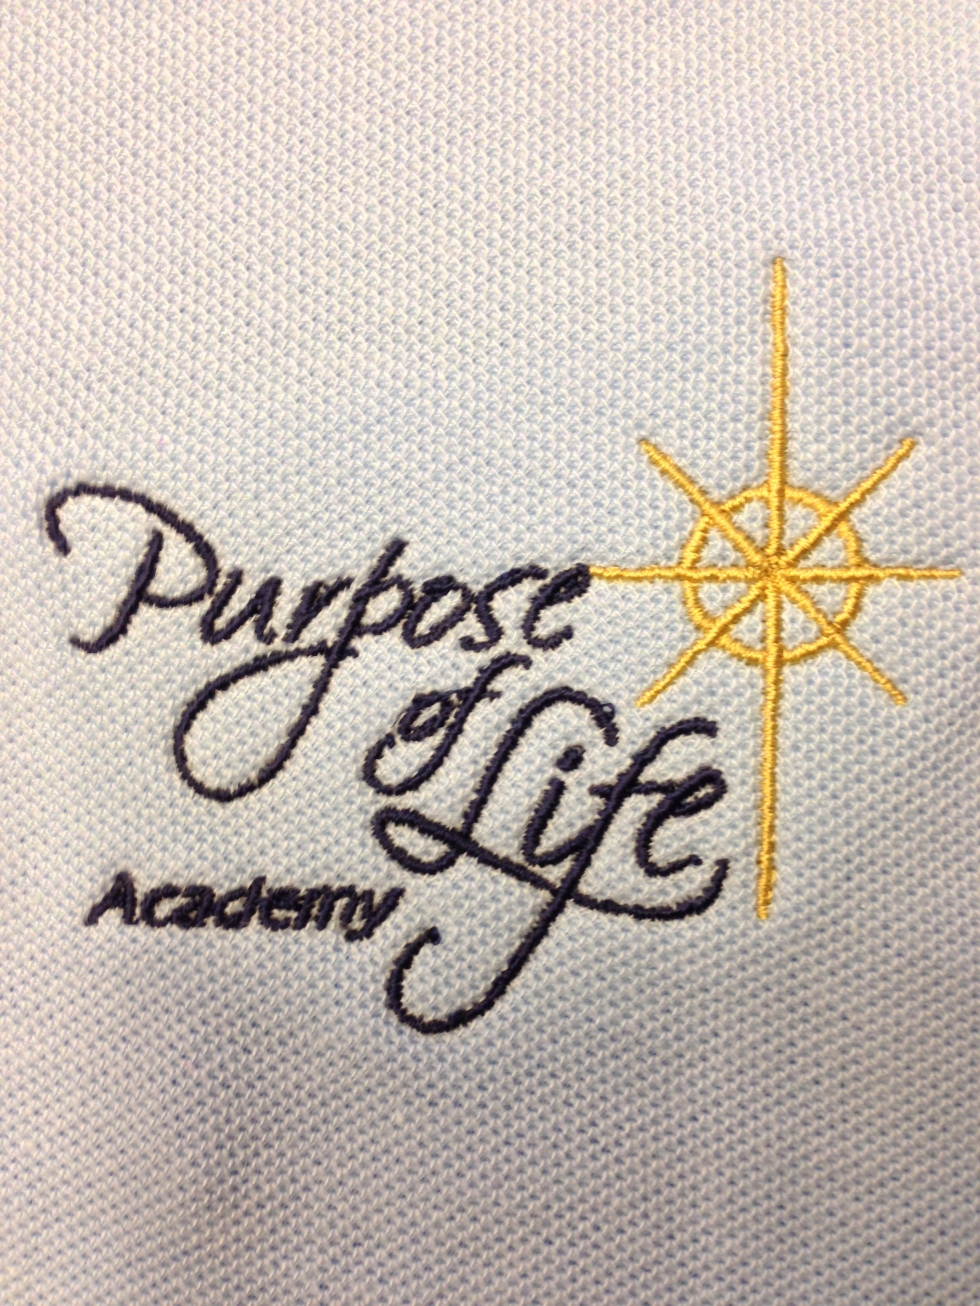 Purpose of Life Polo